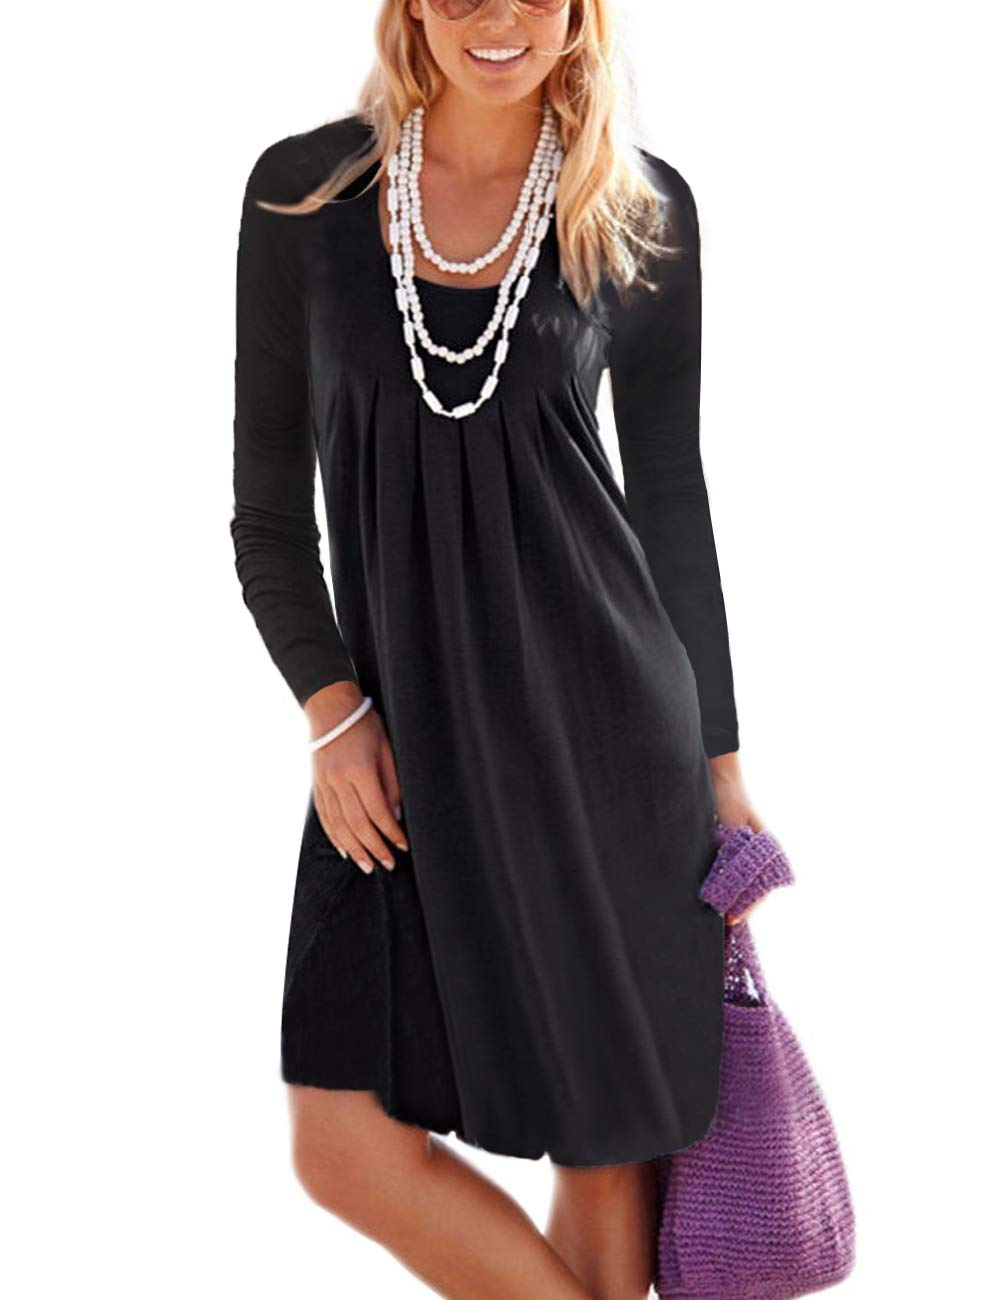 Traleubie Women's Casual Knee Length Long Sleeve Loose Pleated T Shirt Dress Black XL